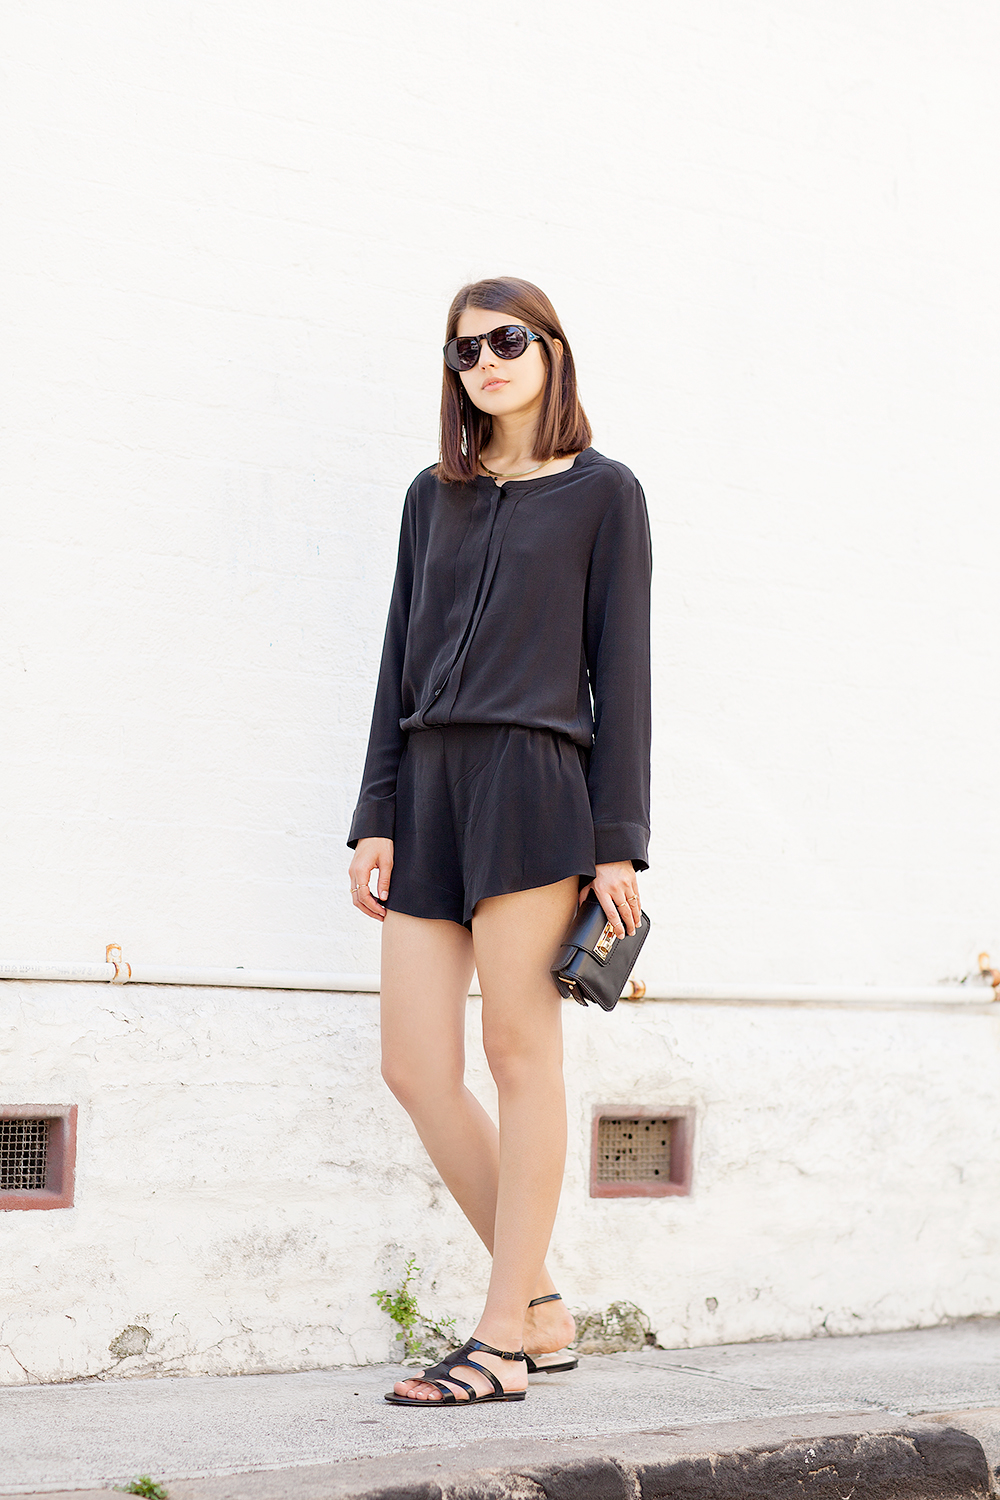 Unif.m playsuit, Dries Van Noten x Linda Farrow sunglasses (similar here), Zara clutch, Sachi sandals